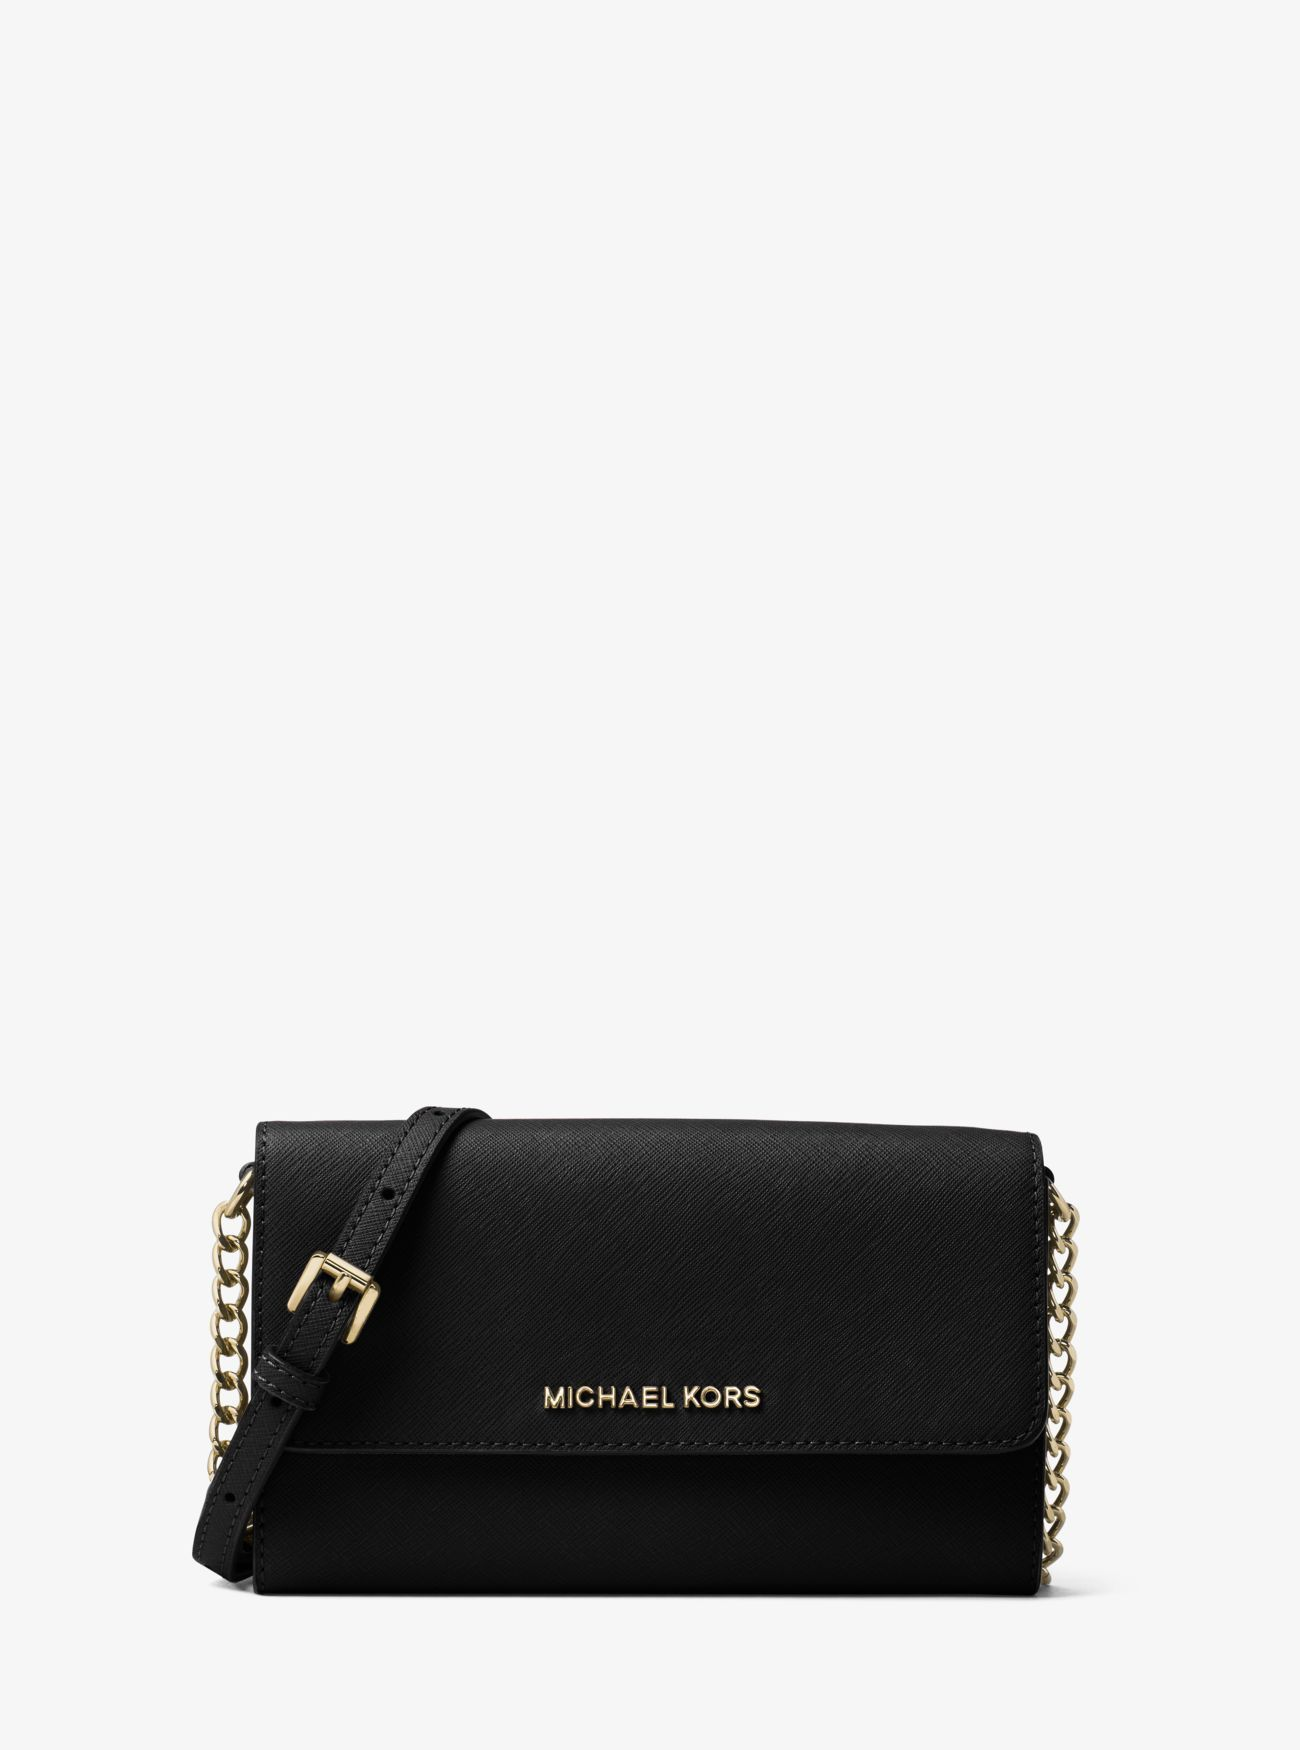 size 40 e440f f4a05 Michael Kors Handbags Are on Up to 75% Off for a Labor Day Sale